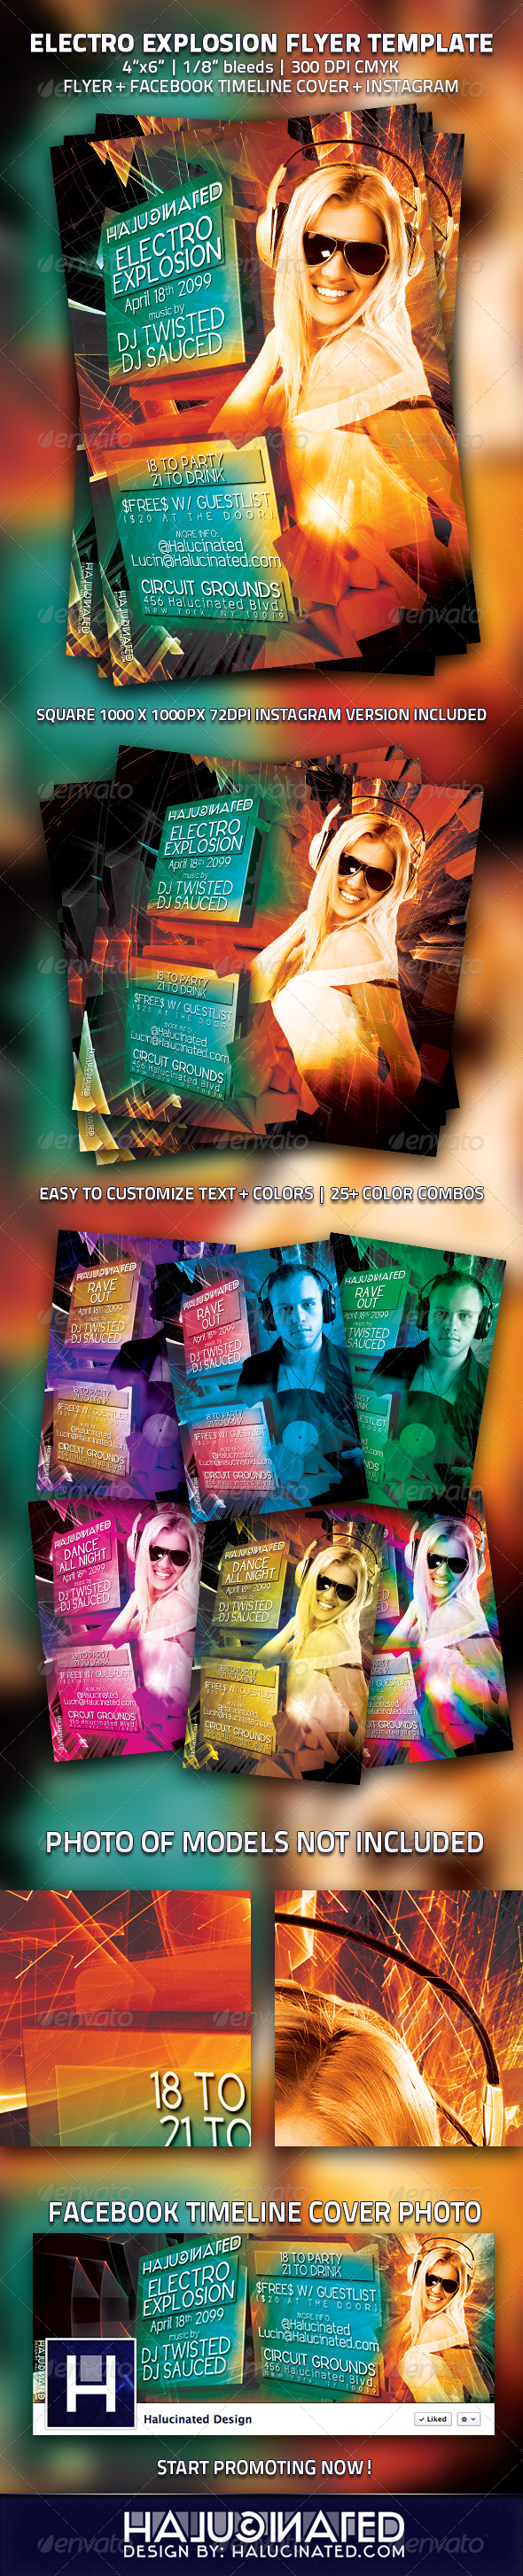 GraphicRiver Electro Explosion Party Flyer Template 3947255